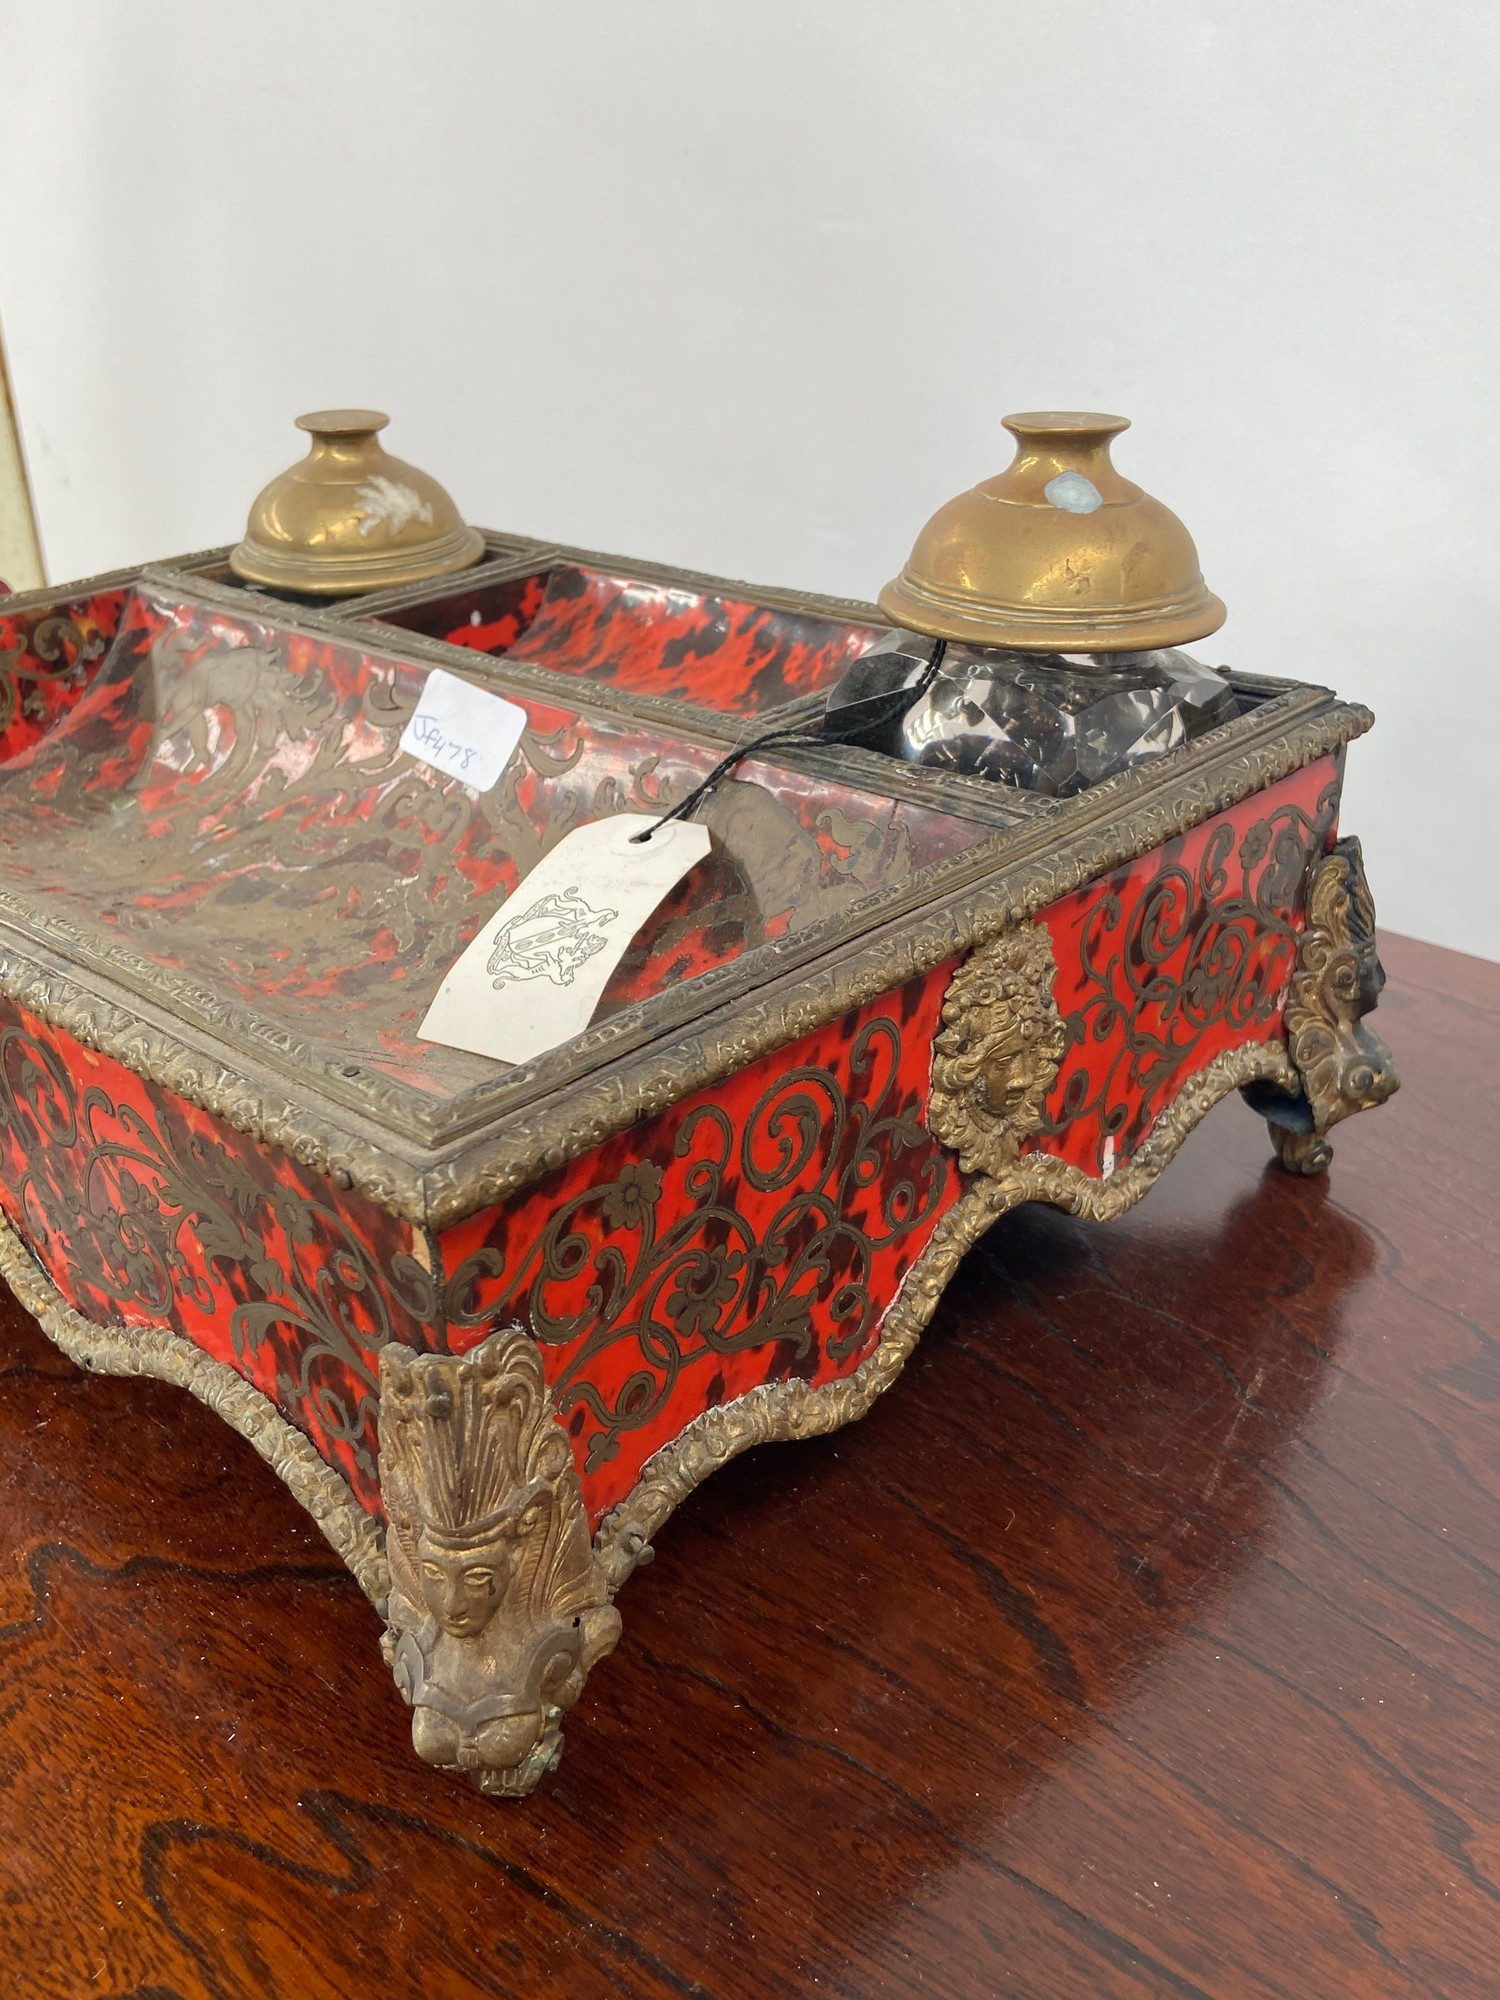 A 19th century French Boulle desk double inkwell stand. [missing a foot] [11x35x26cm] - Image 2 of 6